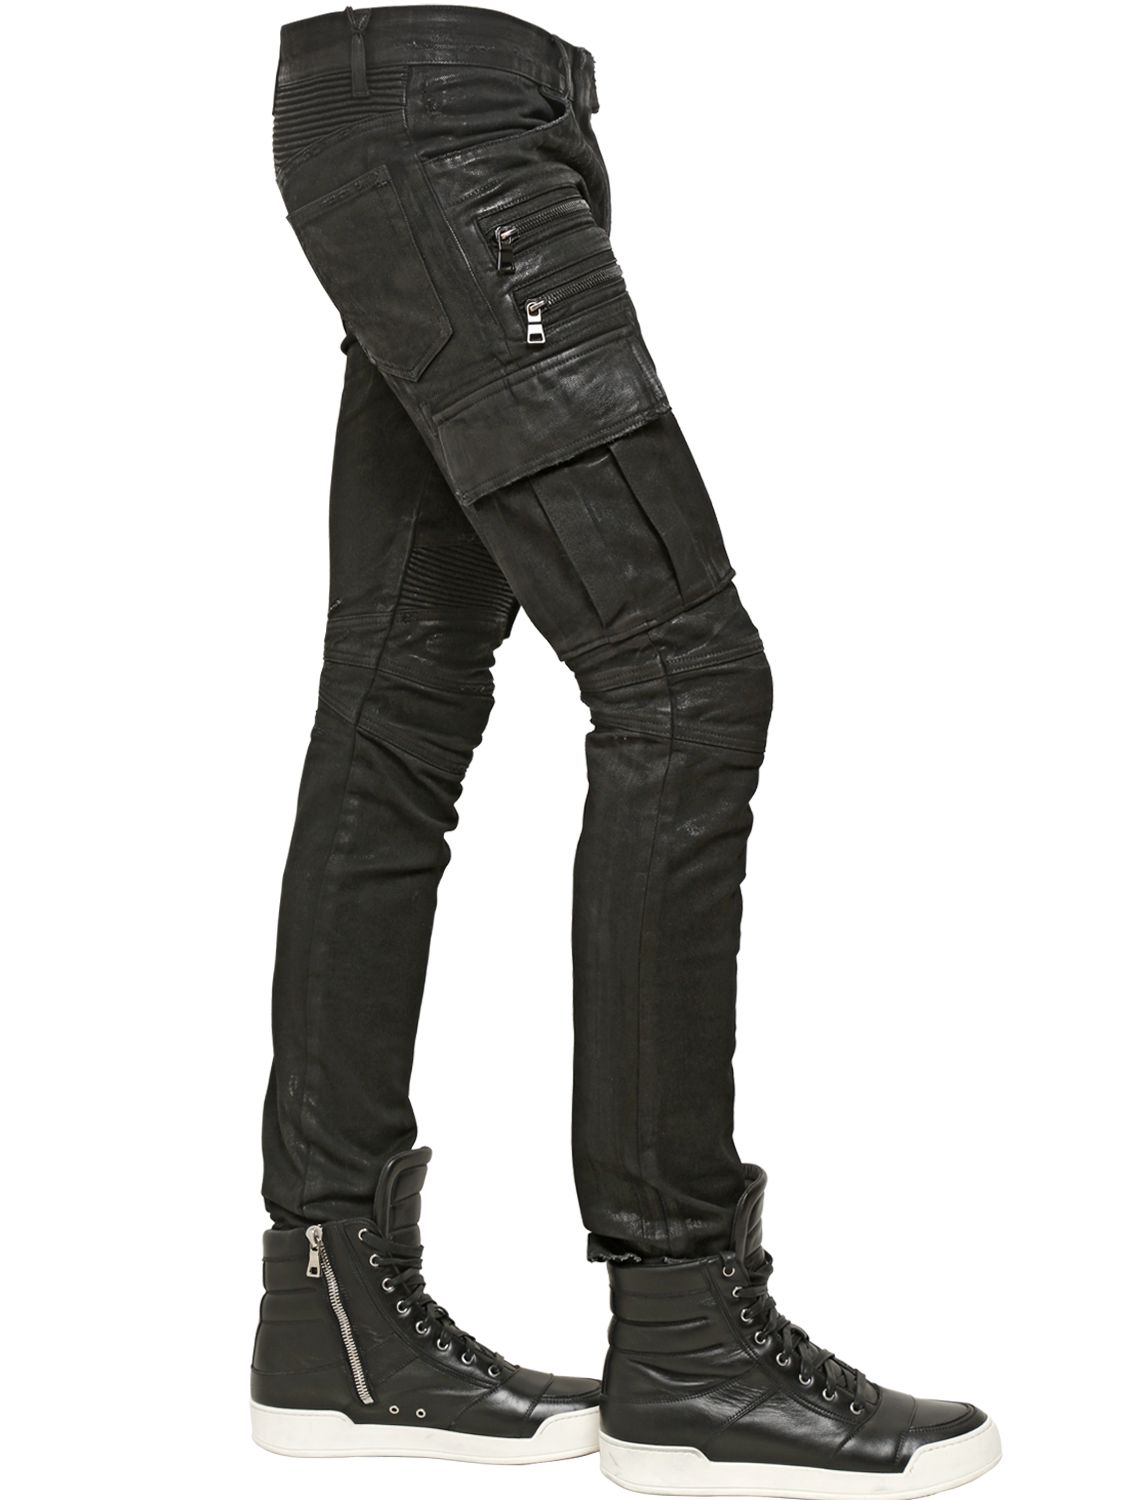 Revolve Clothing Mens Jeans